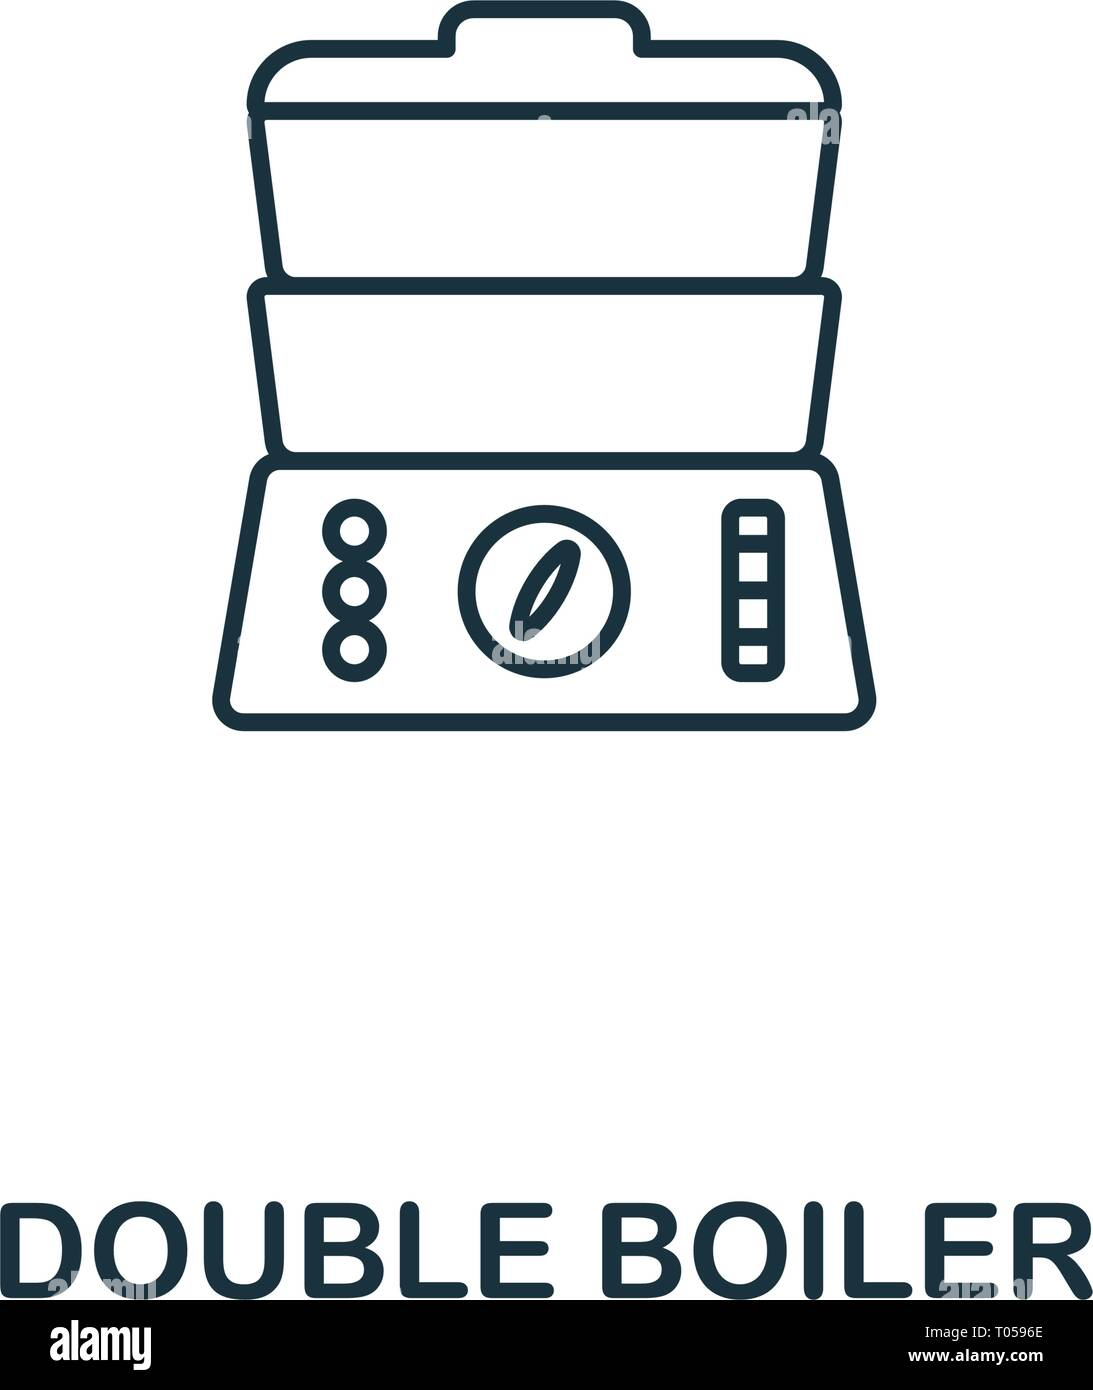 Double Boiler icon. Thin style design from household icons collection. Creativedouble boiler icon for web design, apps, software, print usage - Stock Image